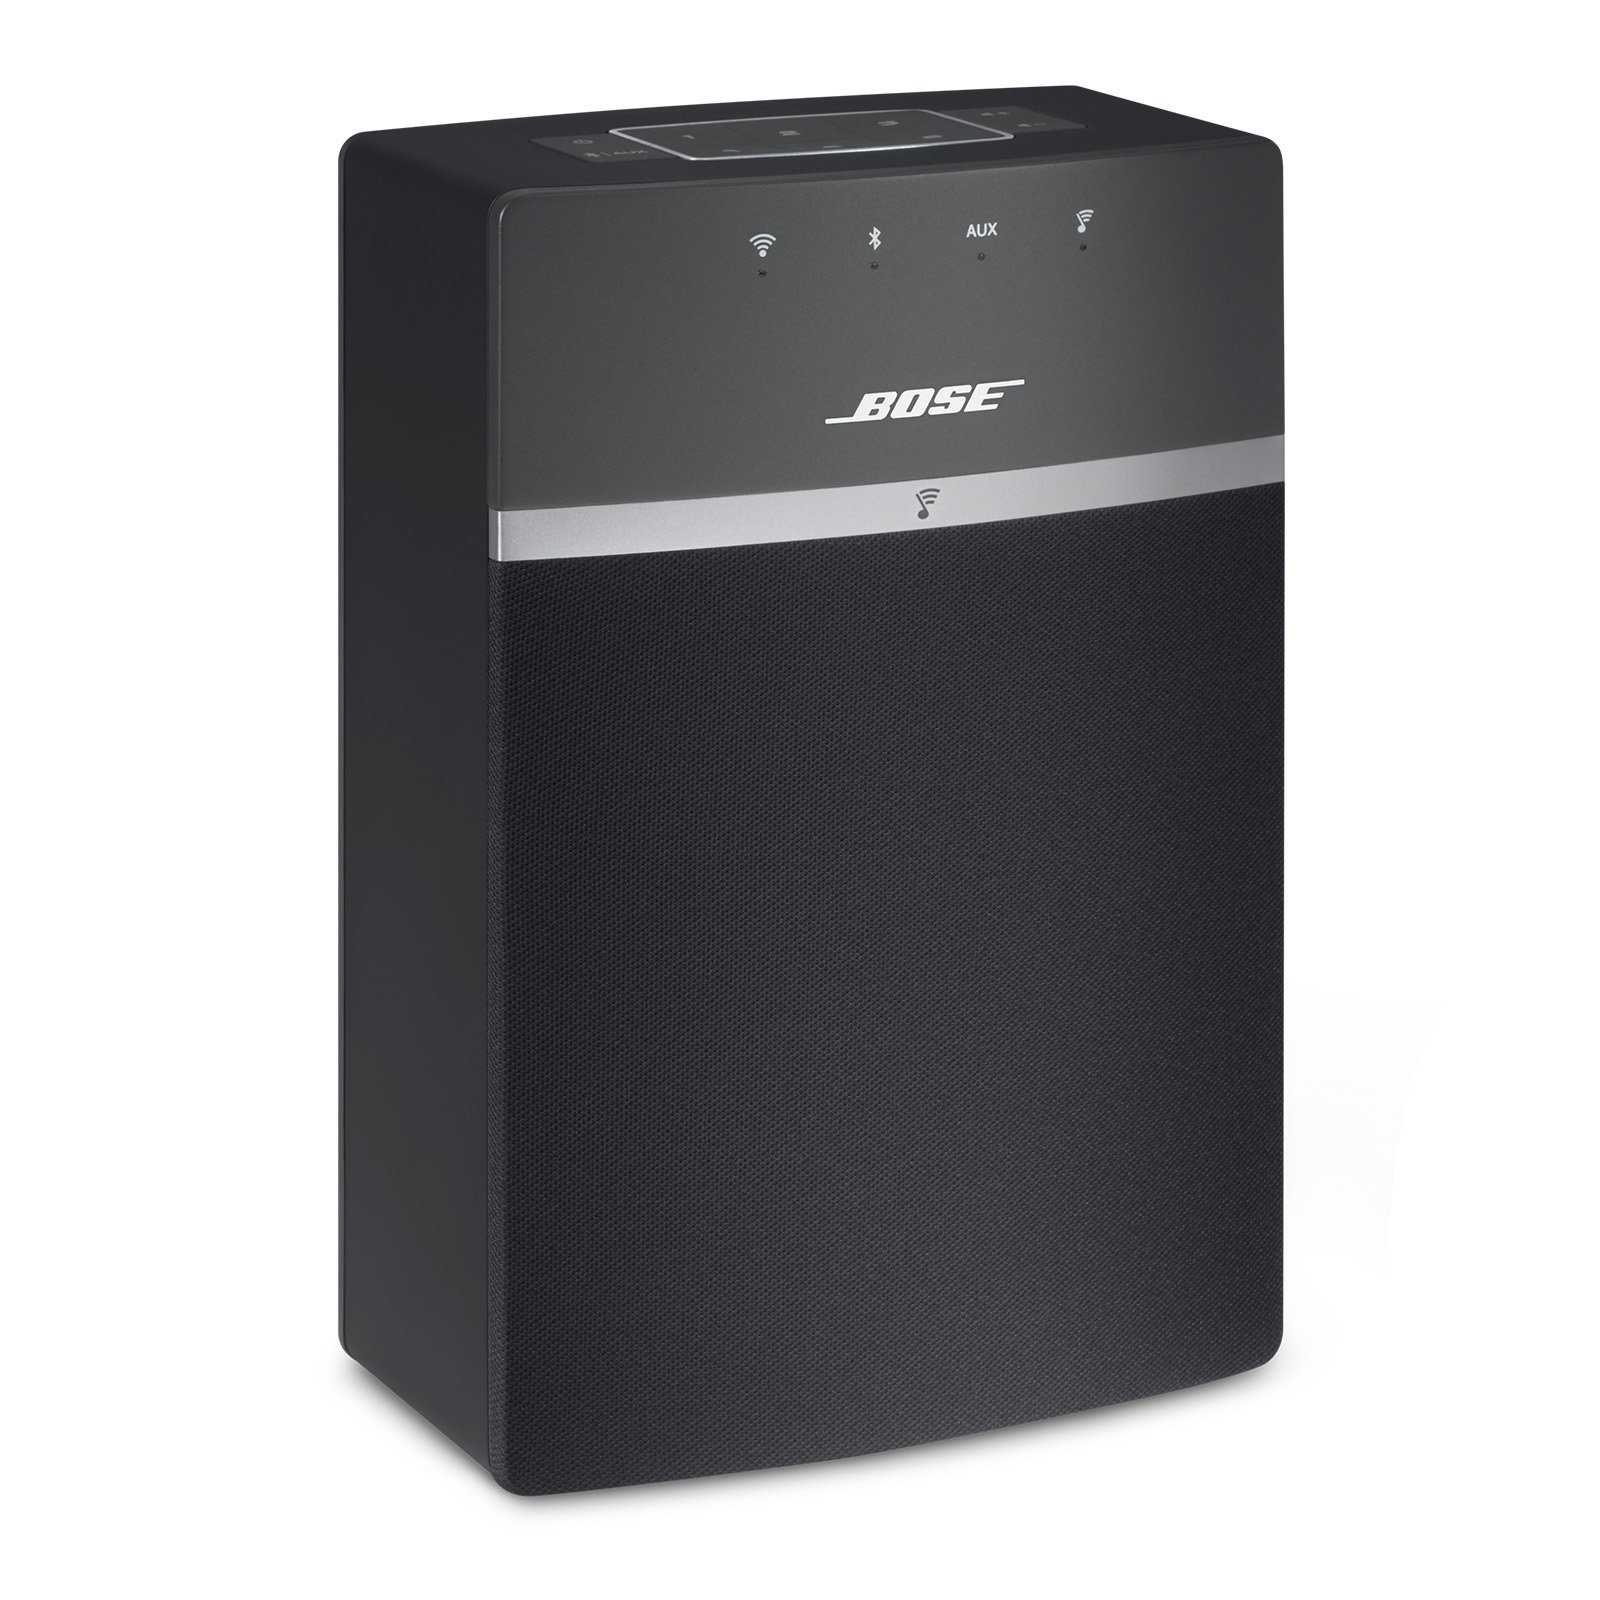 Bose SoundTouch 10 wireless speaker, works with Alexa - Black by Bose